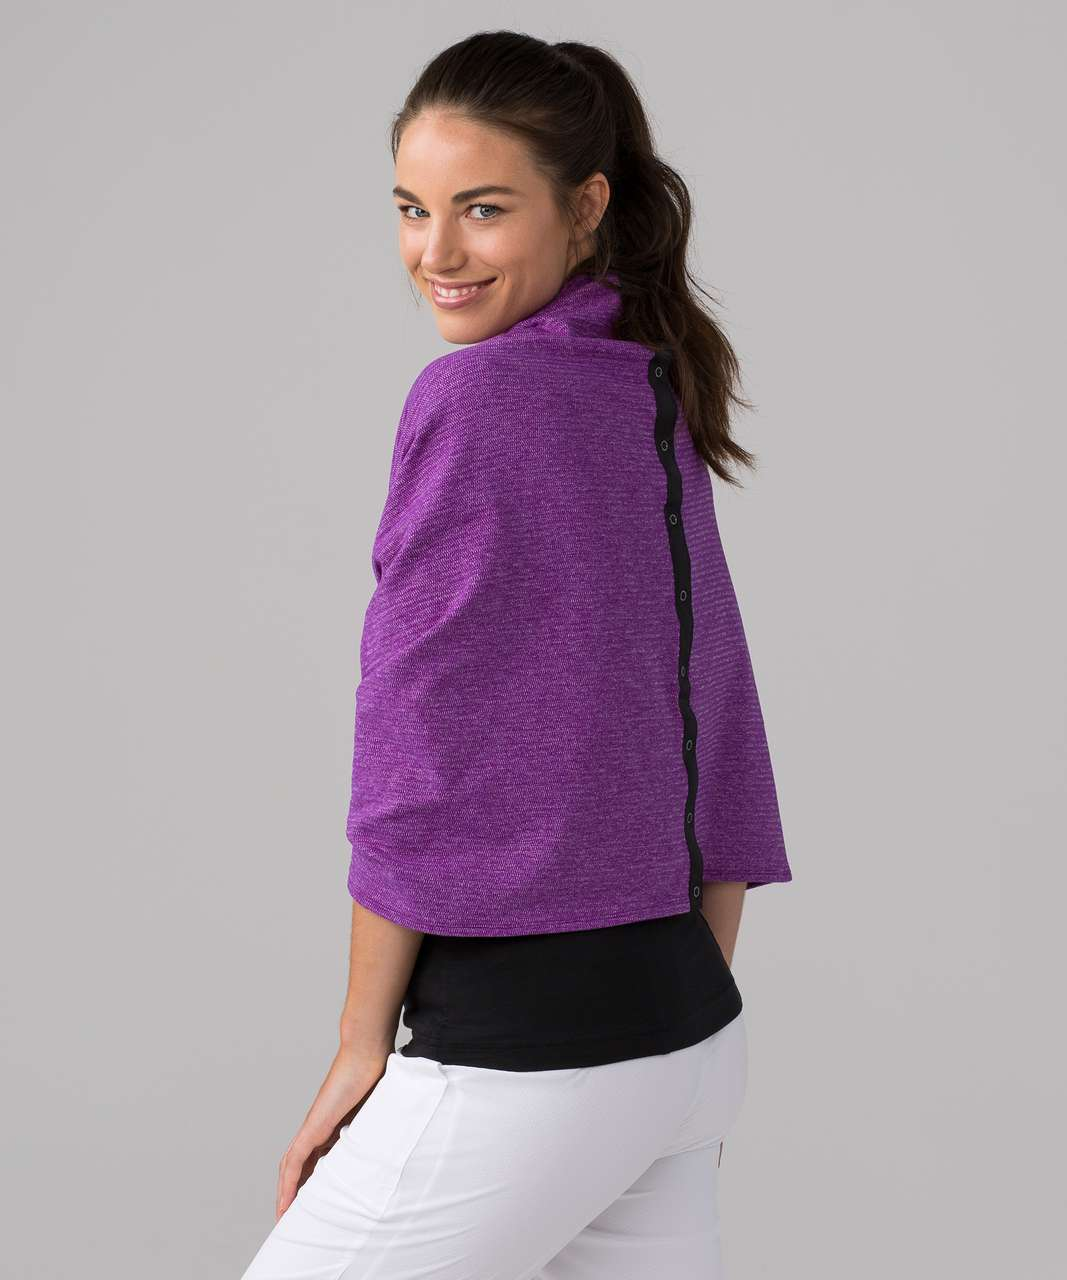 Lululemon Vinyasa Scarf (Rulu) - Mini Check Pique Tender Violet Heathered Tender Violet